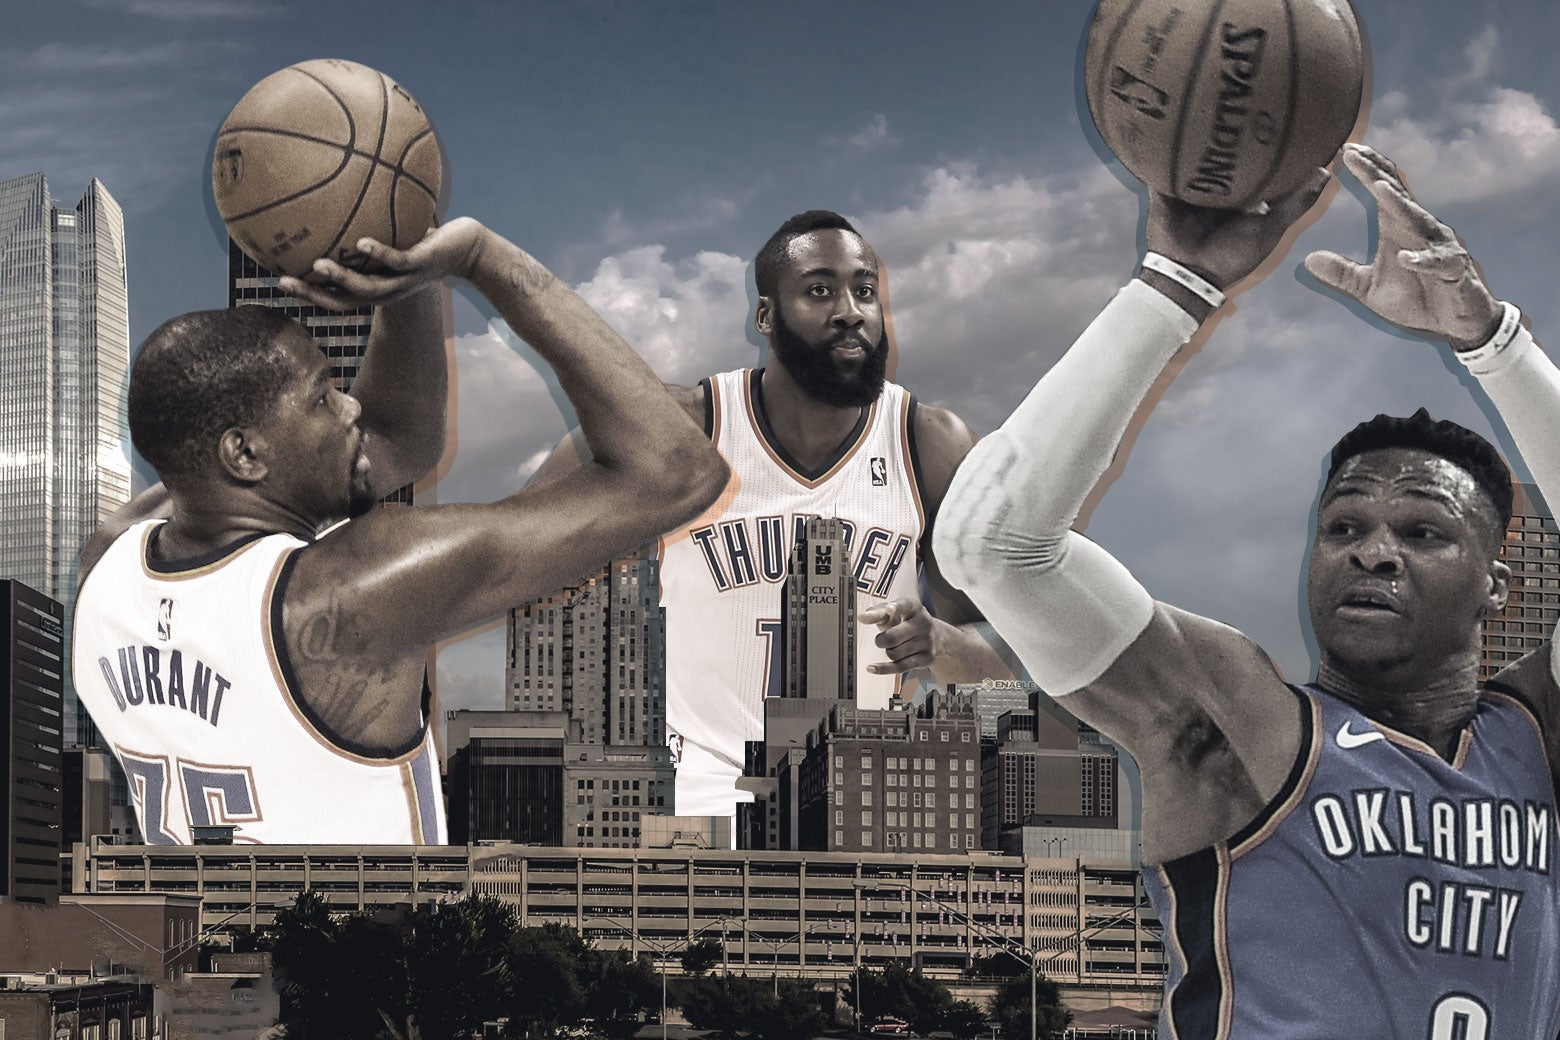 Oklahoma City Thunder players Russell Westbrook, Kevin Durant, and James Harden playing in the Oklahoma City skyline.